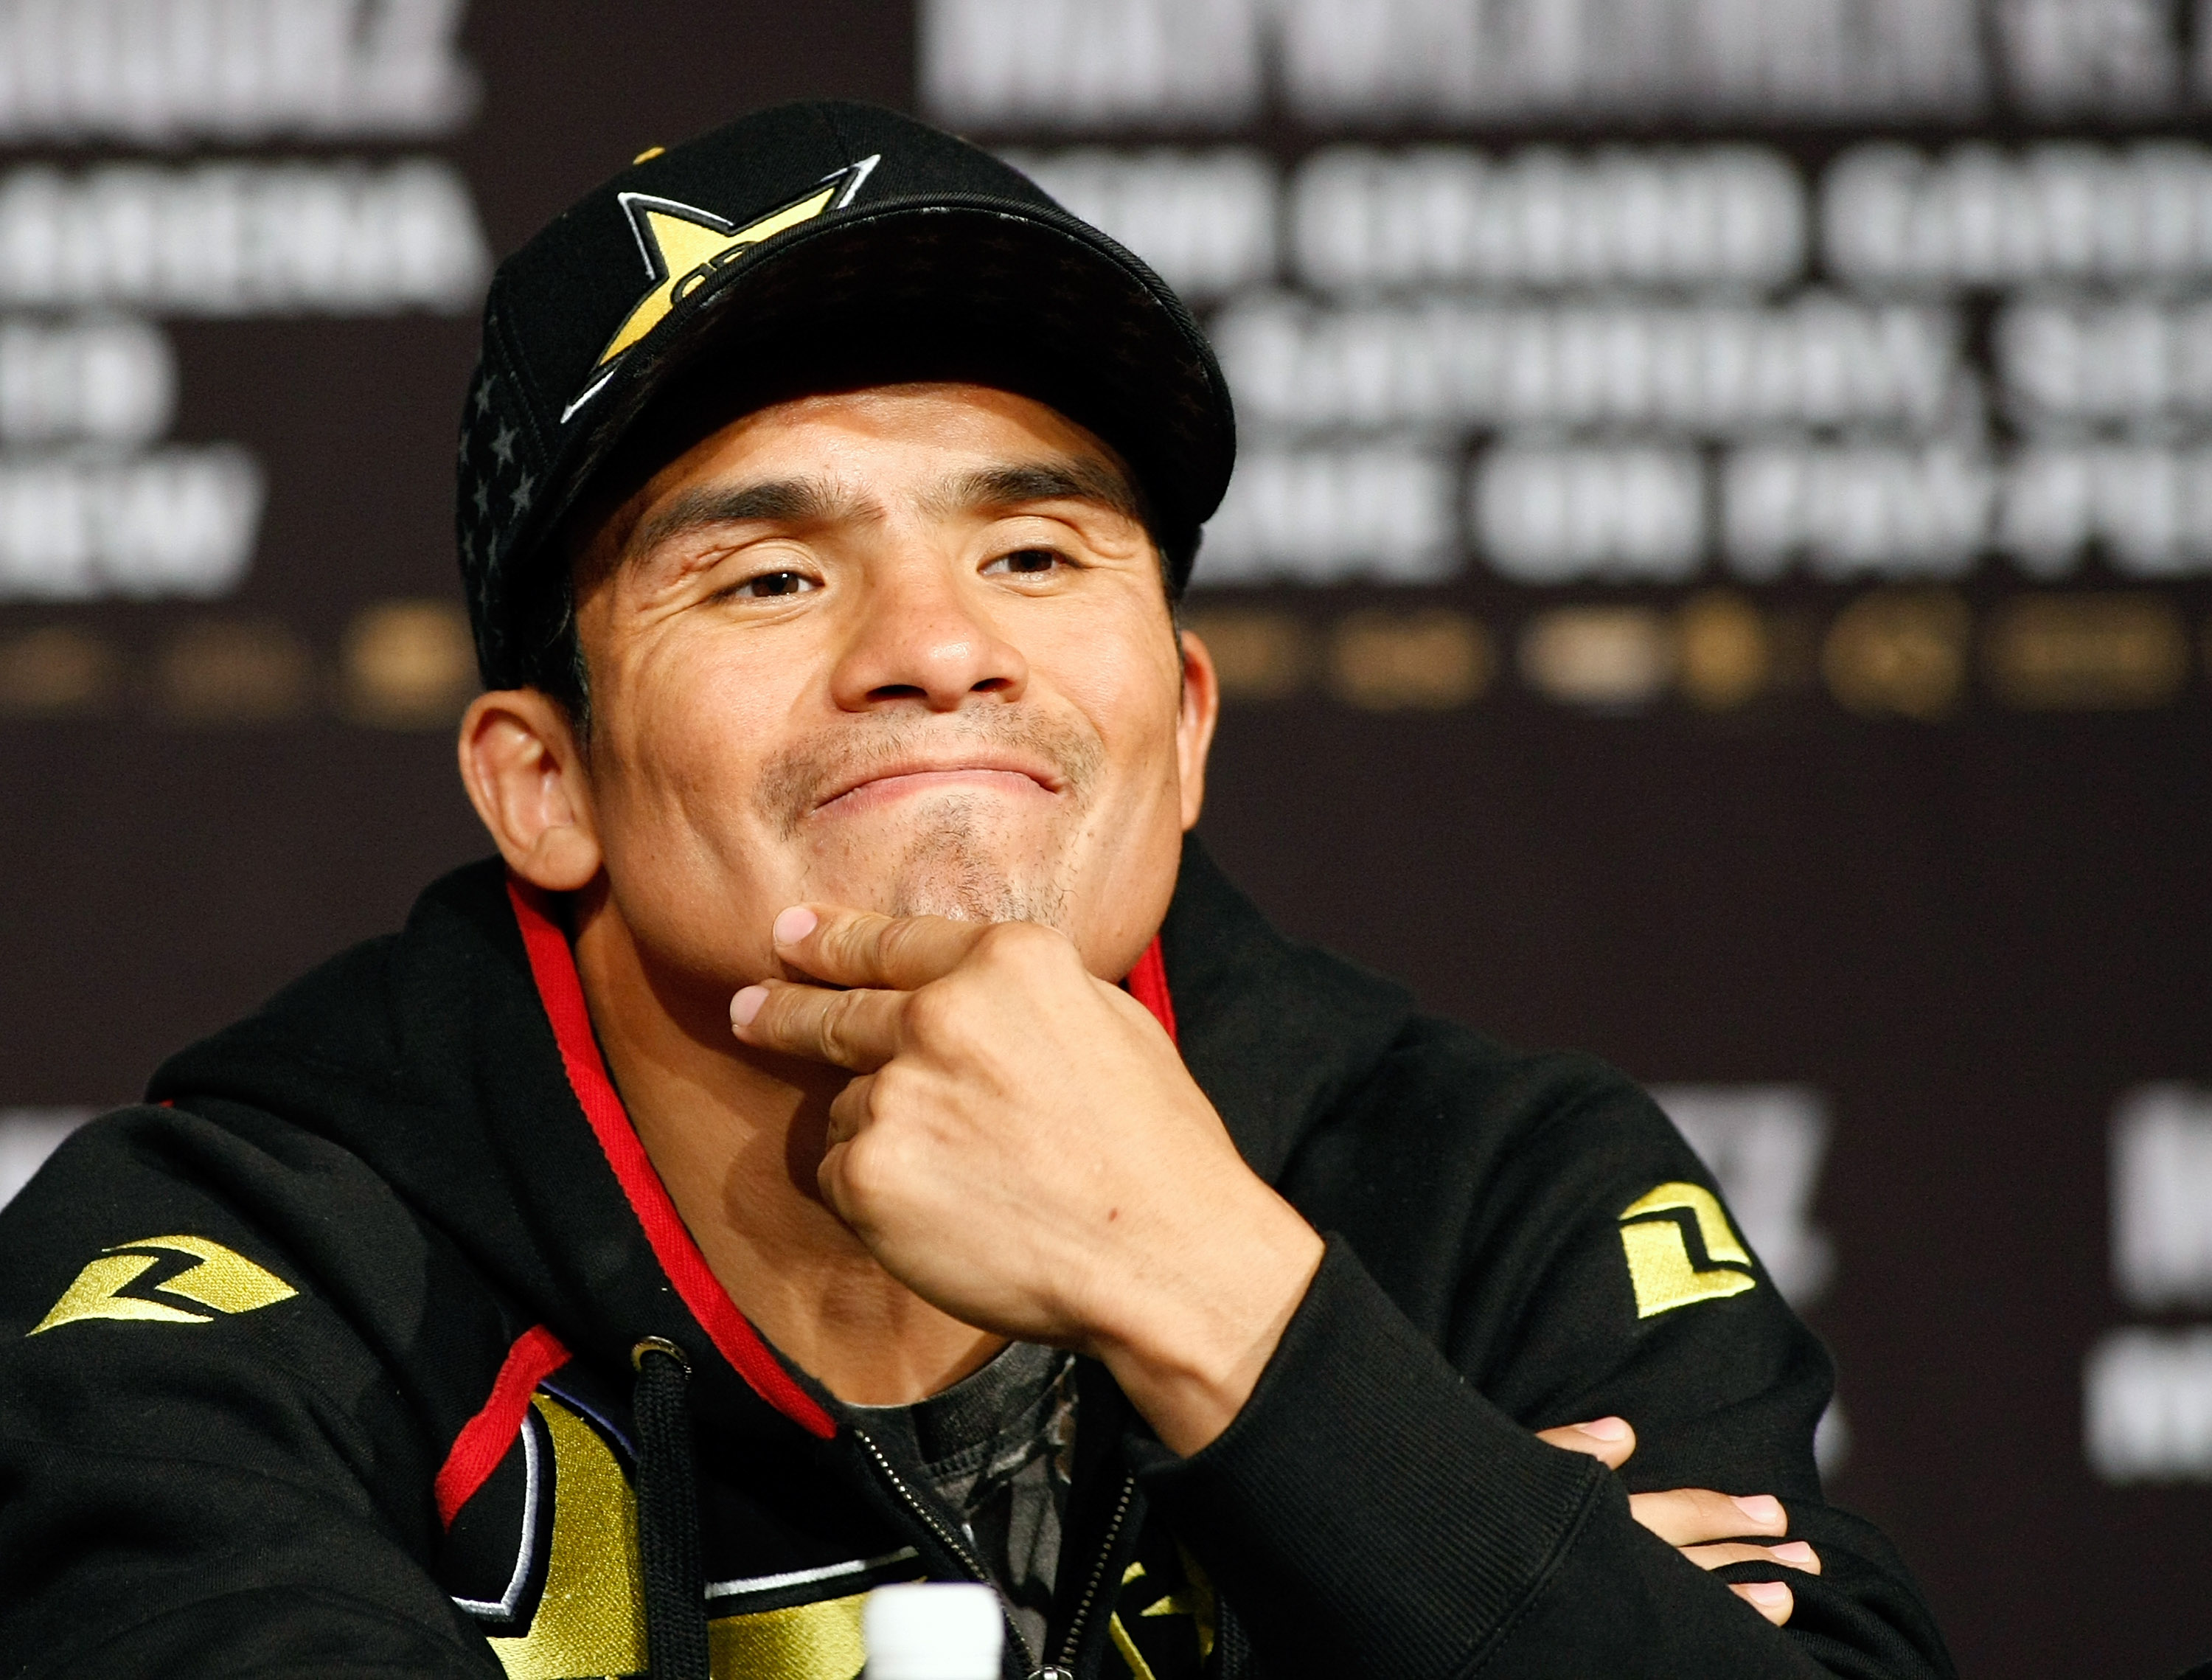 LAS VEGAS - SEPTEMBER 16:  Boxer Juan Manuel Marquez appears during the final news conference for his bout against Floyd Mayweather Jr. at the MGM Grand Hotel/Casino September 16, 2009 in Las Vegas, Nevada. The two will fight at the MGM Grand Garden Arena